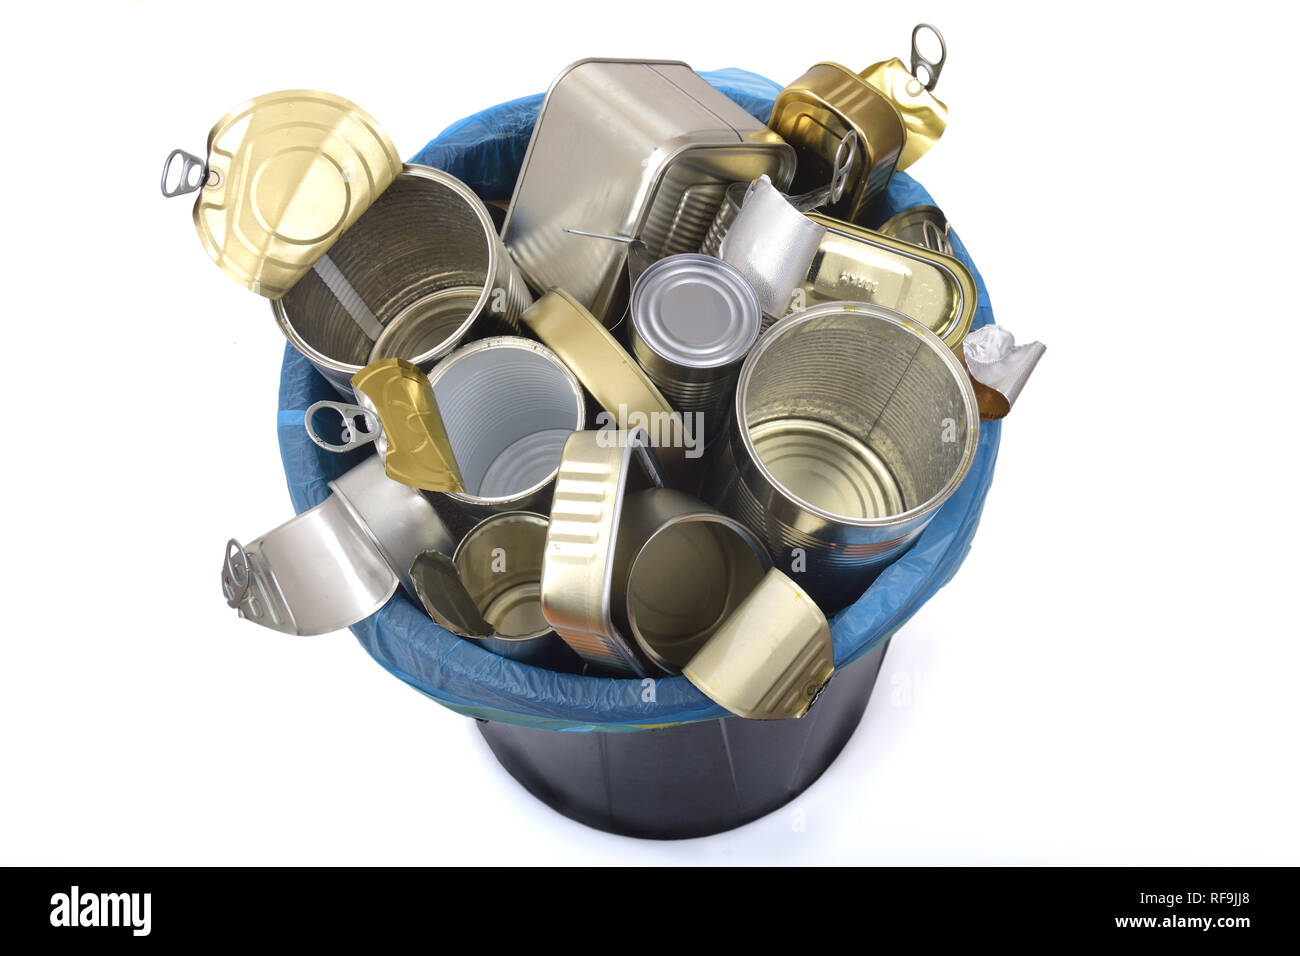 trash can (tin can food) full of cans on white - Stock Image